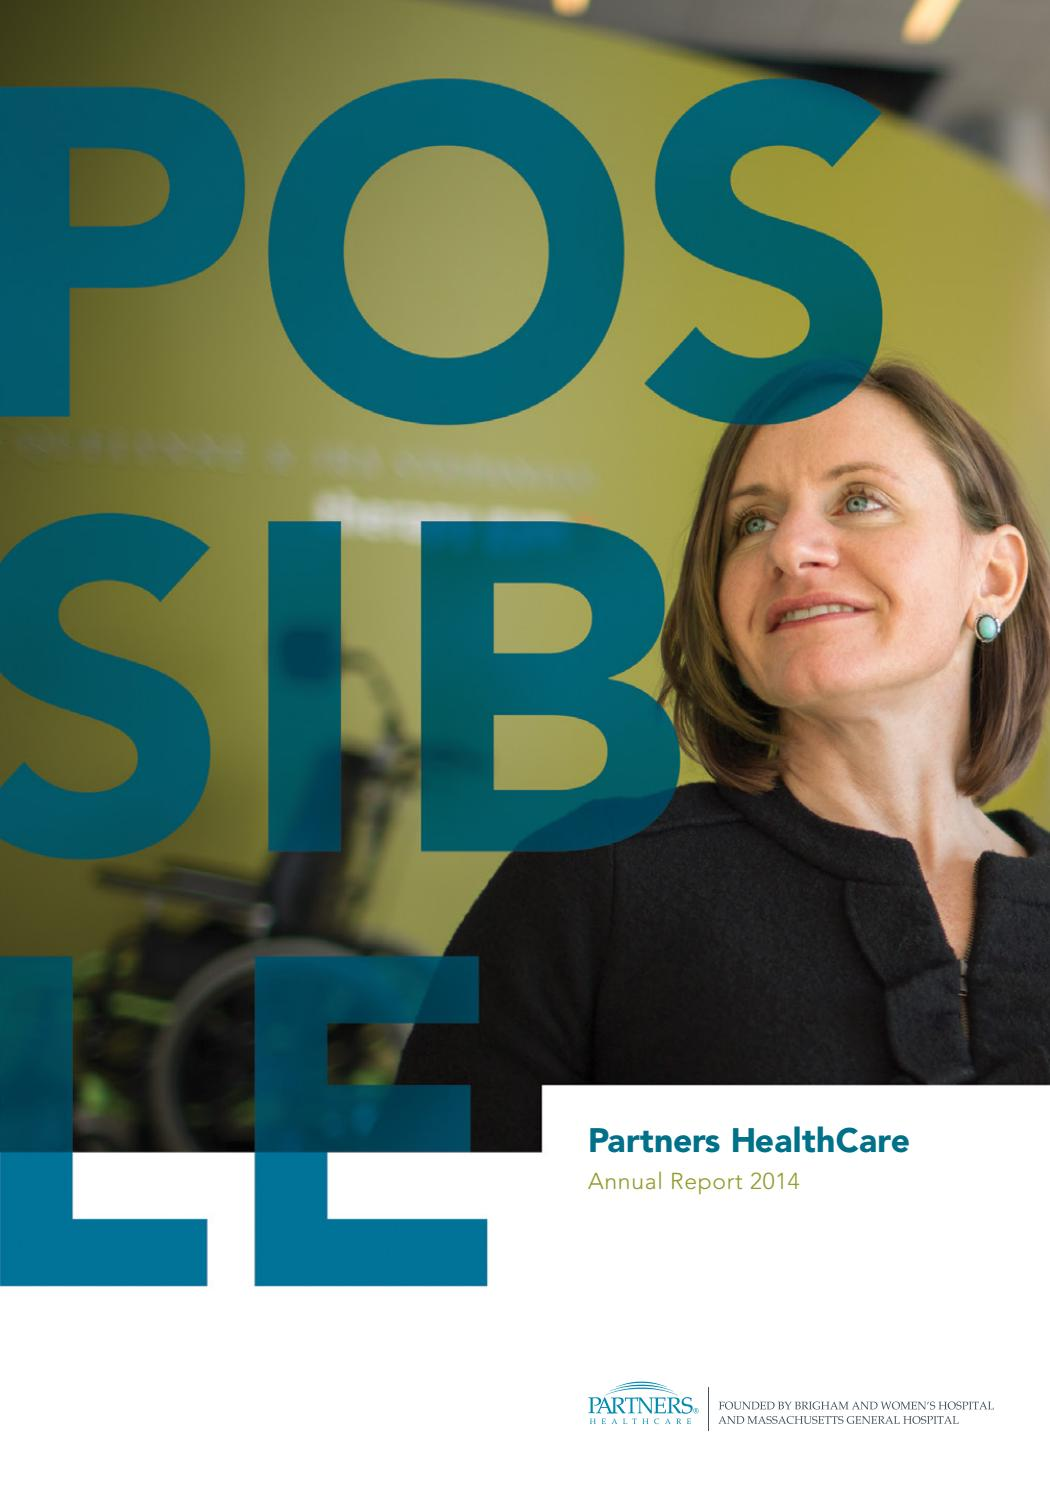 Partners Healthcare Annual Report 2014 by Jose Nieto - issuu